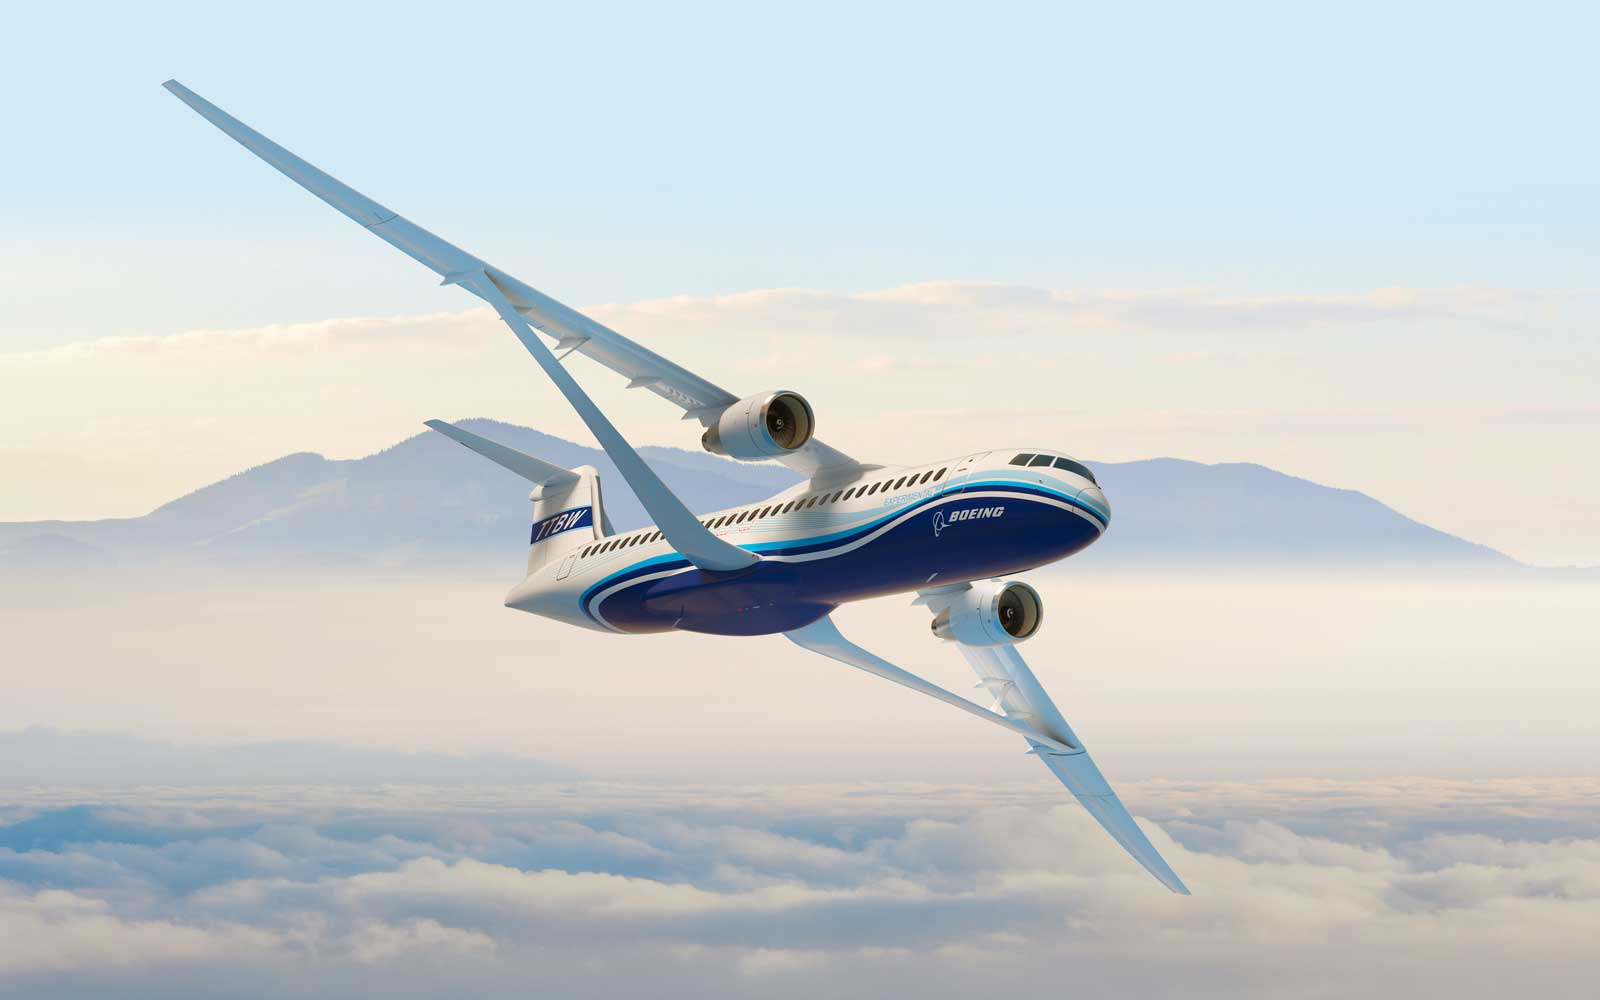 Boeing and NASA Are Working on Airplane Wings That Could Make Flights Faster